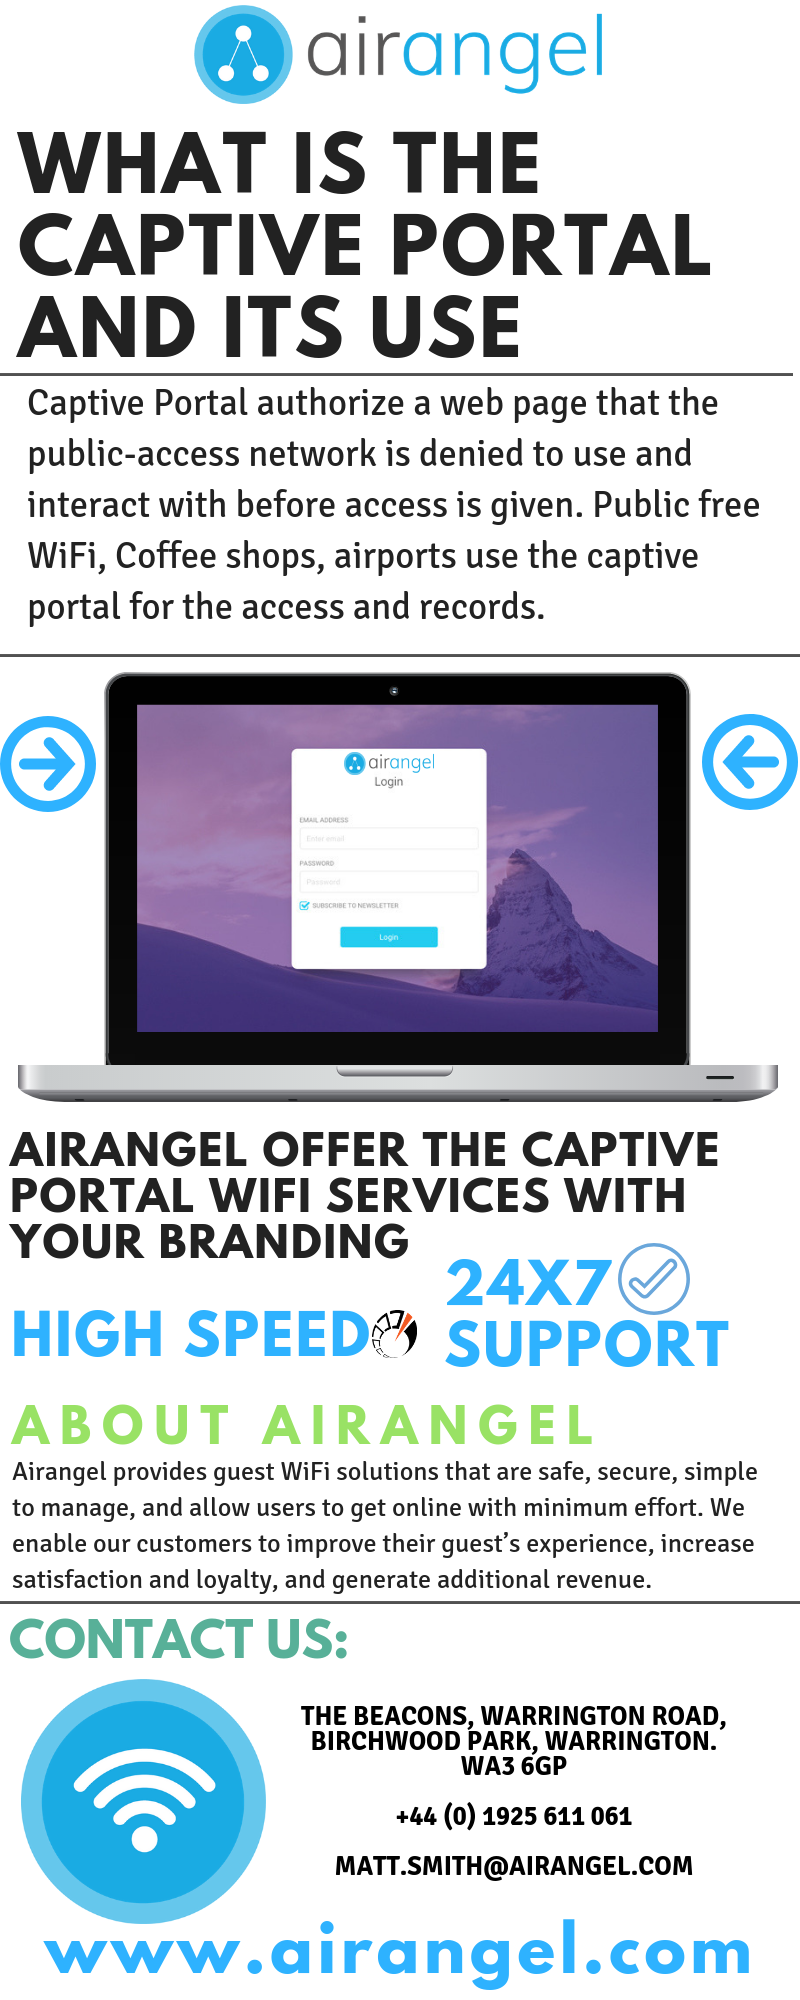 Get the best and affordable Captive Portal WiFi services from